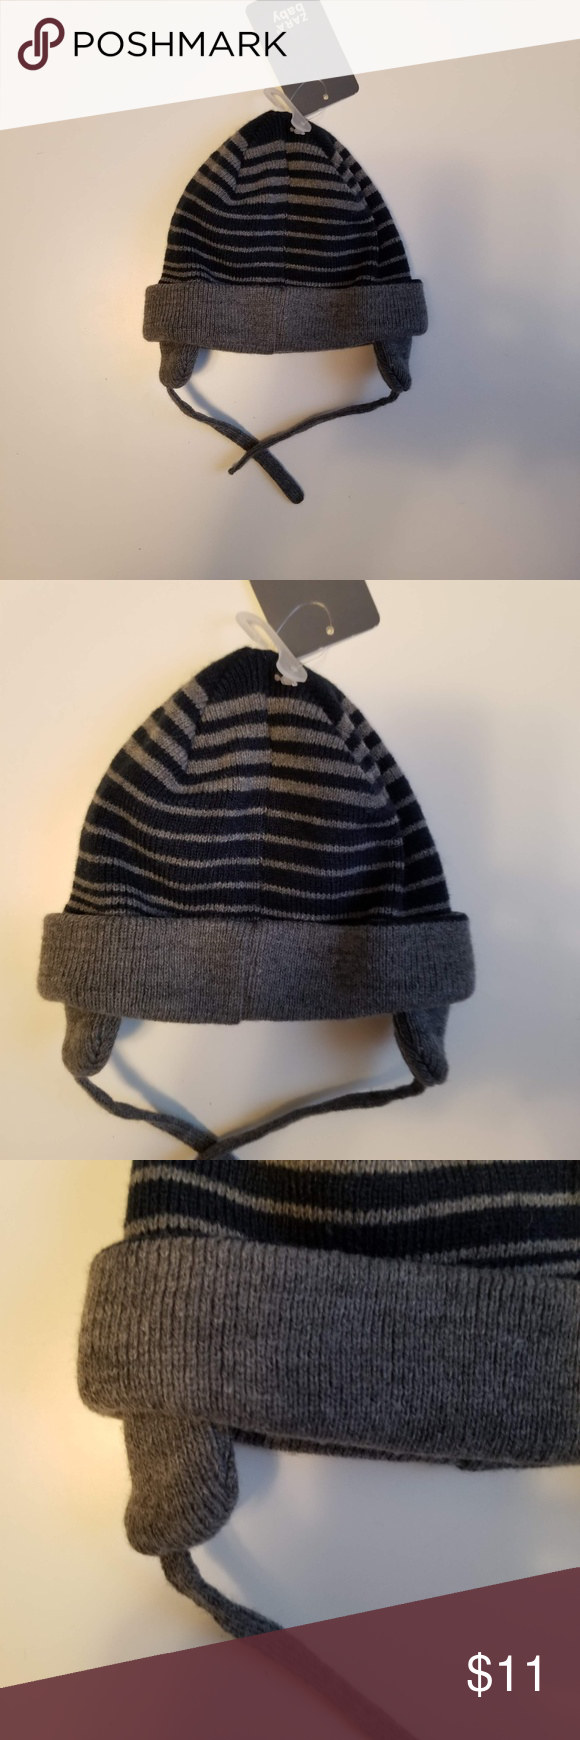 bb26fcc325911 Zara Baby Boys Striped Winter Knit Hat Size 6-12 M Zara Baby Boys Striped